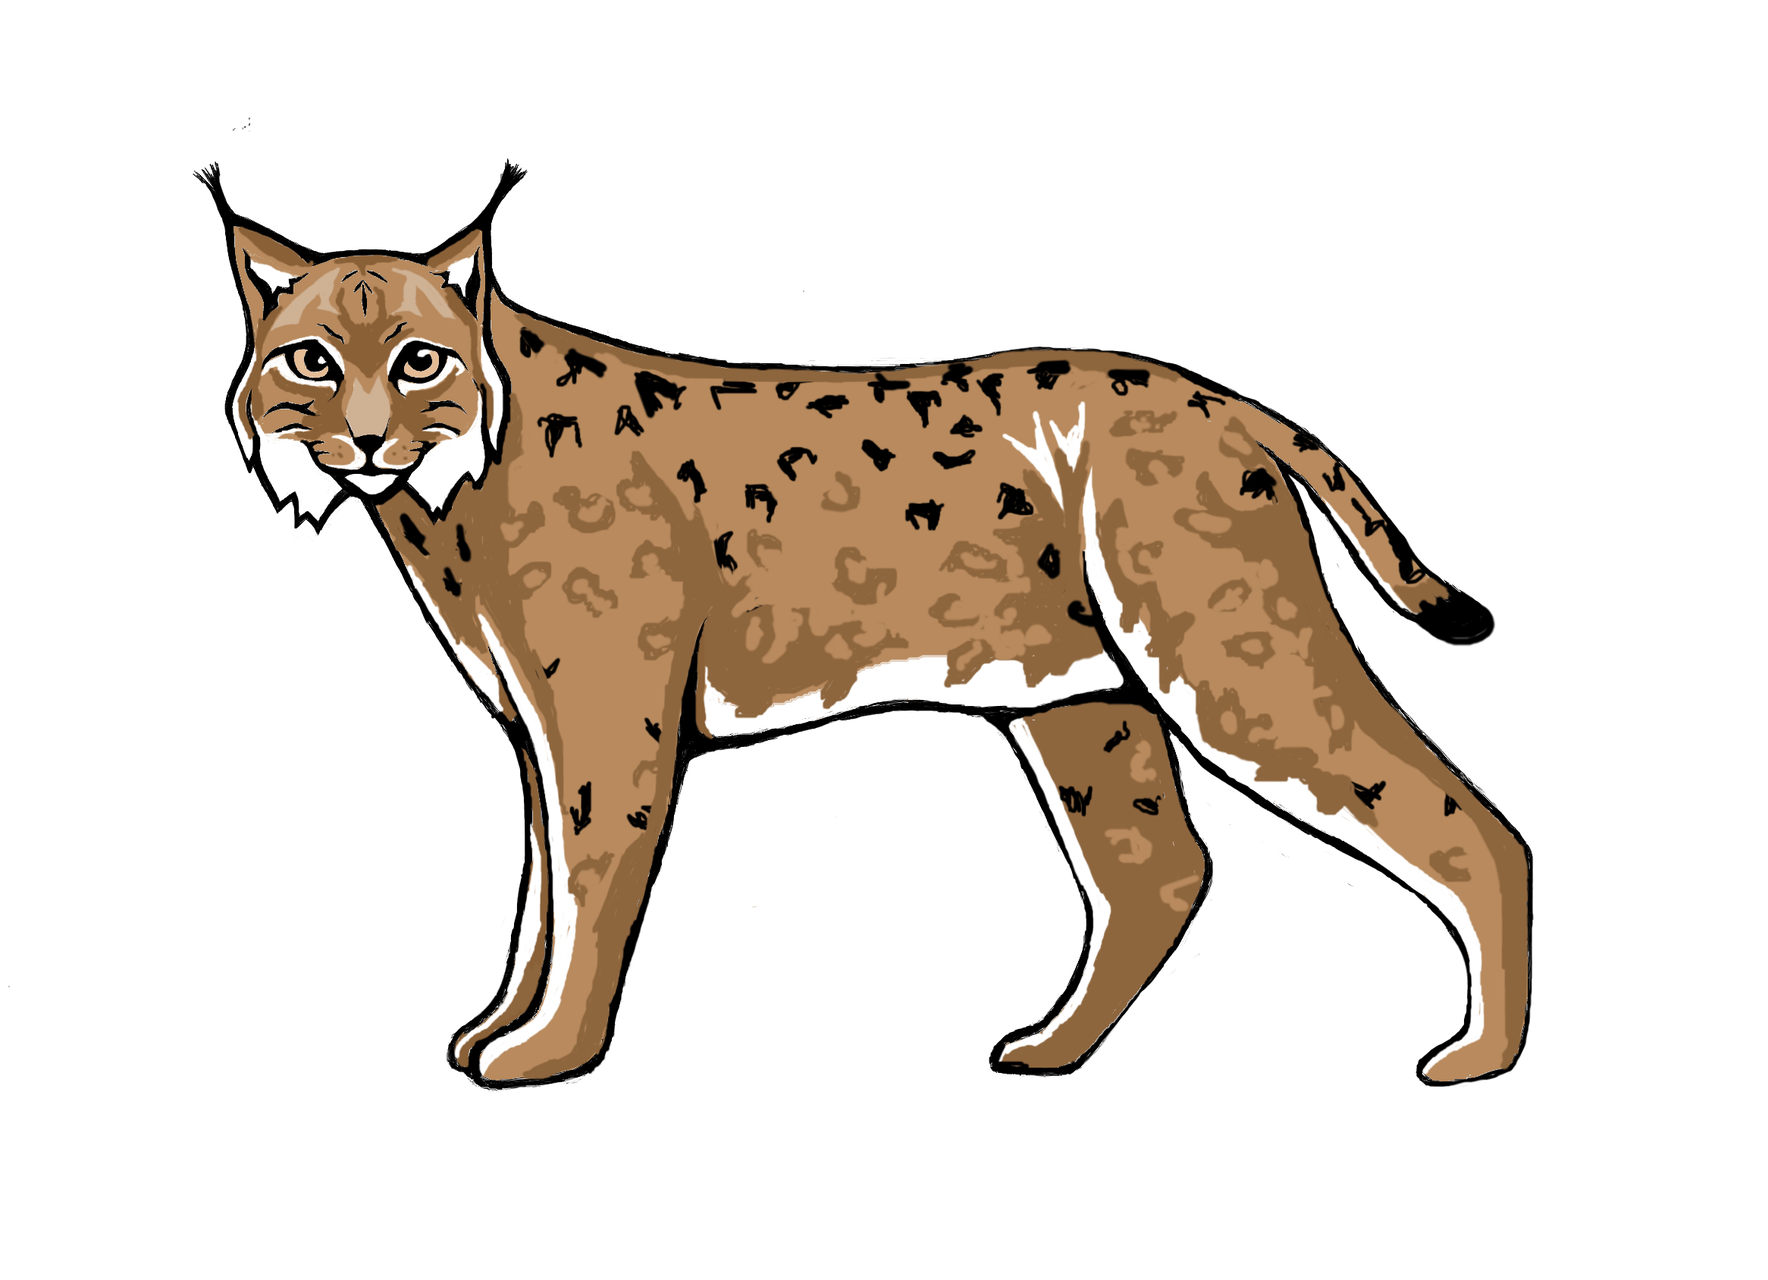 Game topic - lynx and wildcat reintroduction - where does the lnxy live and what supports/endangers it?